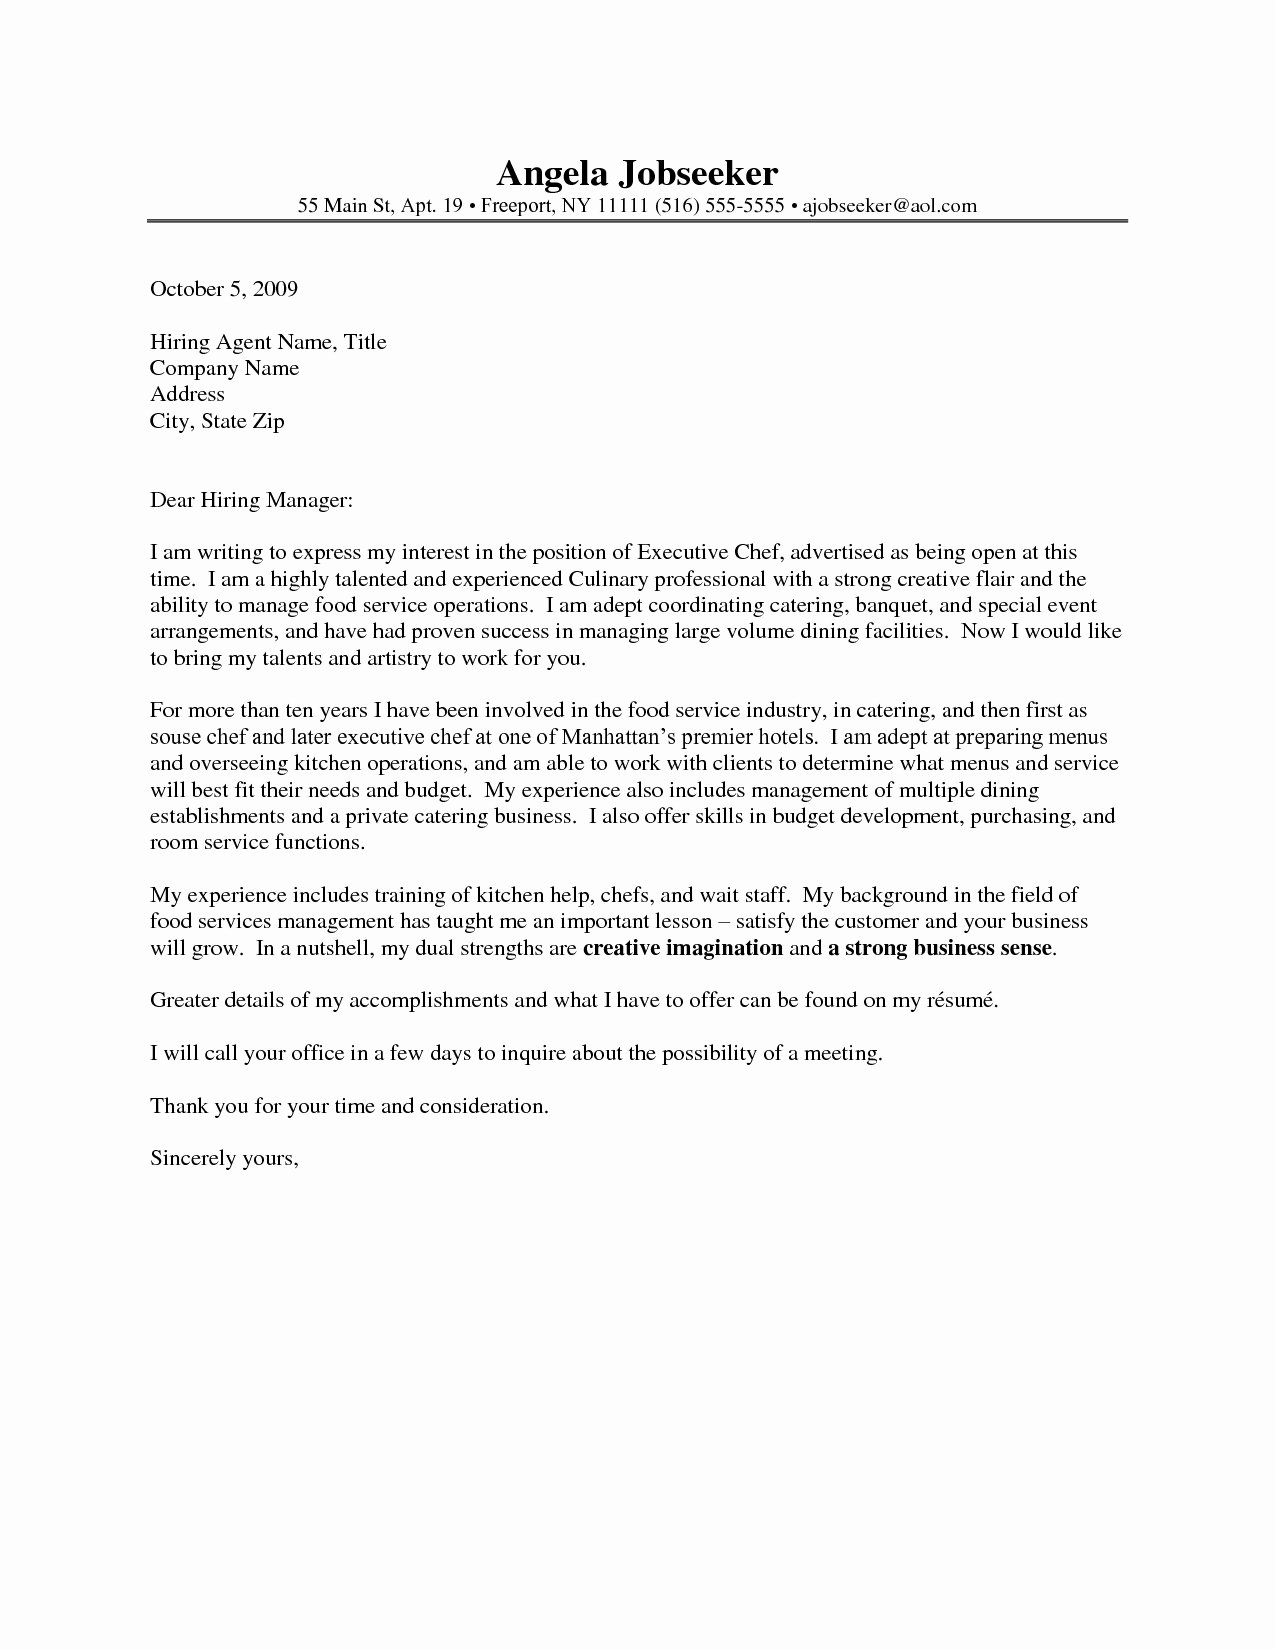 Cover Letter for Chef Awesome Chef Cover Letter Examples Icebergcoworking